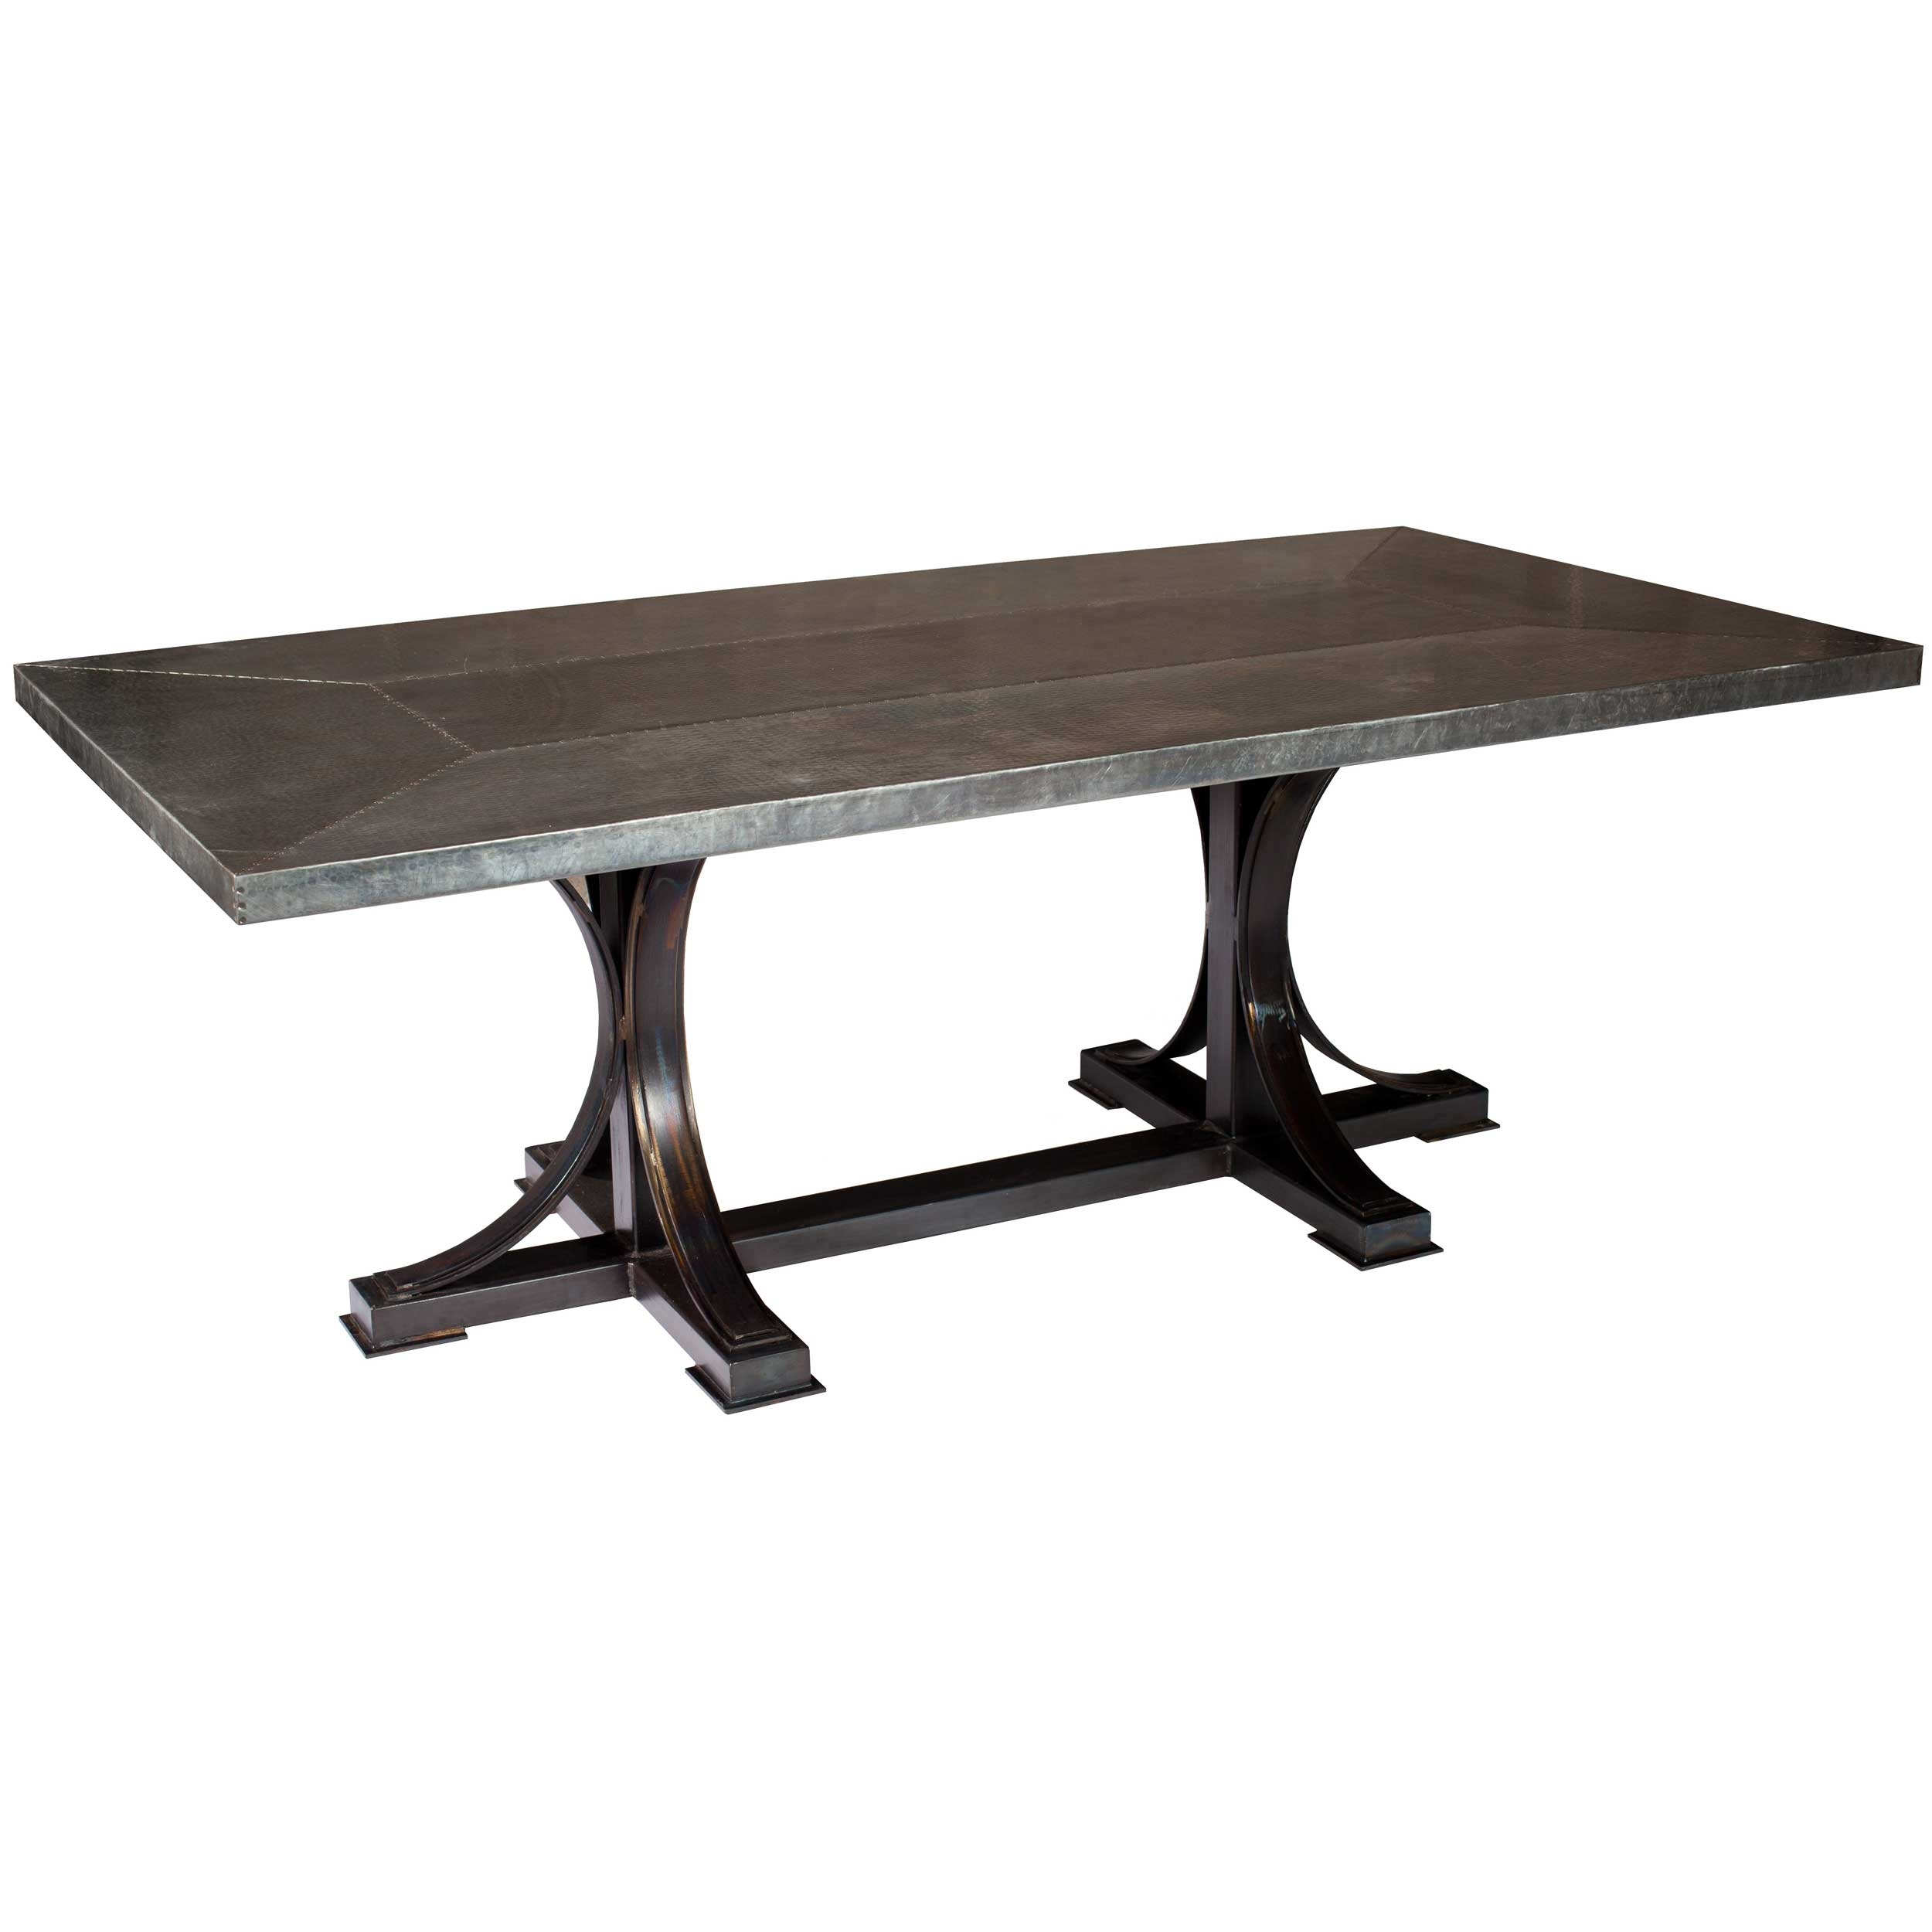 Zinc Dining Table French Rectangle And Square Iron Dining Tables Iron Base Dining Table